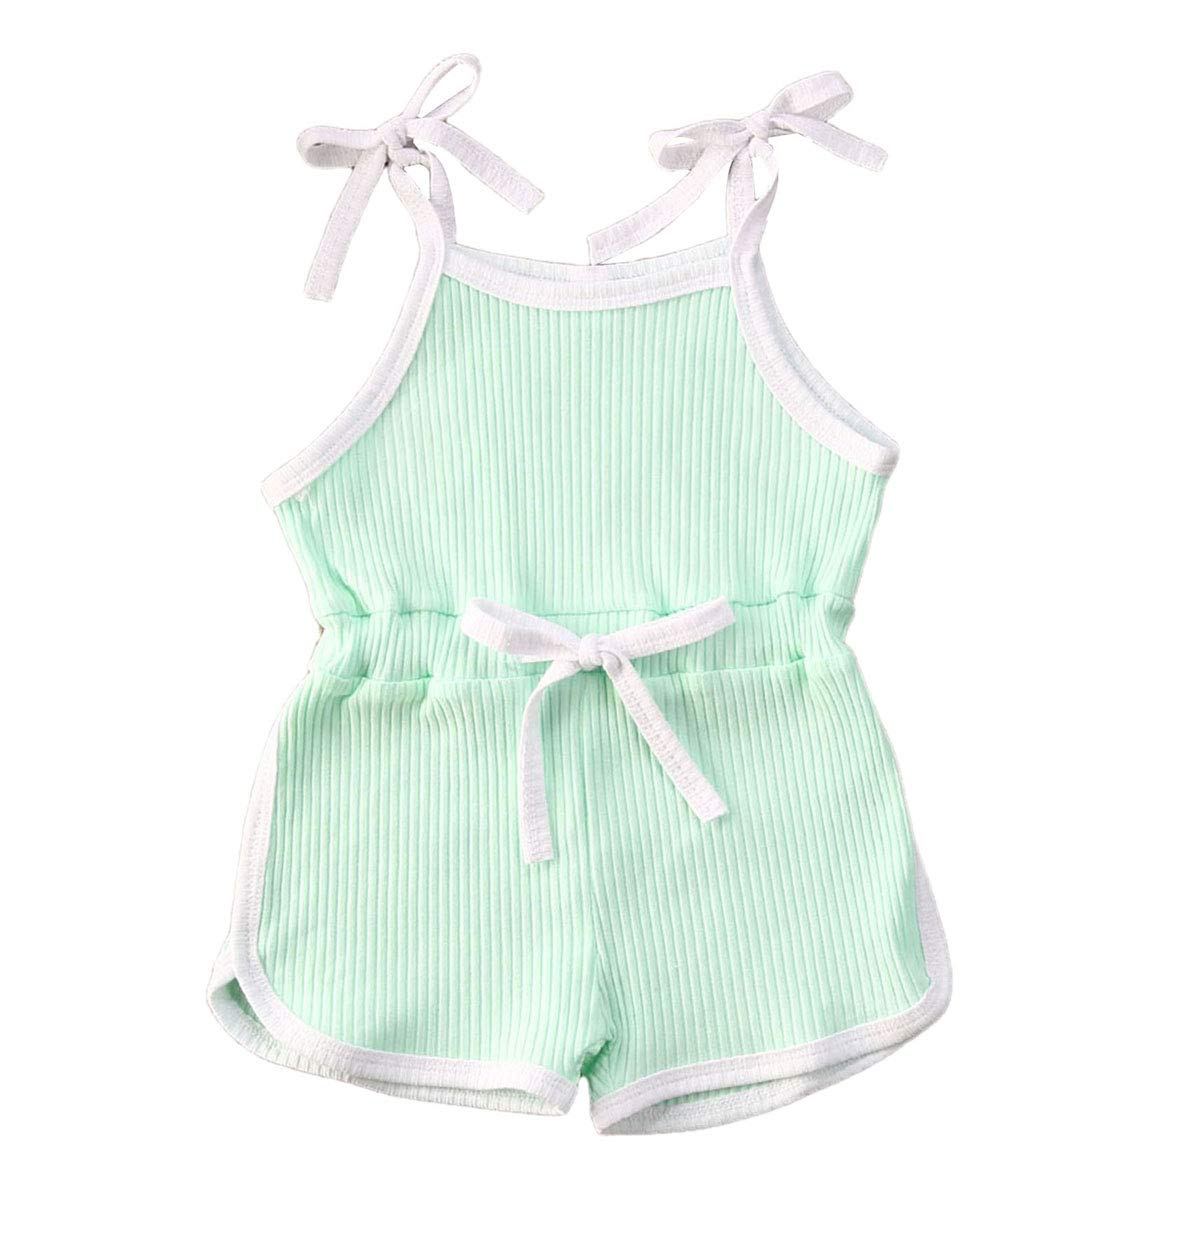 Toddler Baby Girls Summer Knit Outfits Set Ruffle Tops Shirt + Shorts Pants 2Pcs Clothes